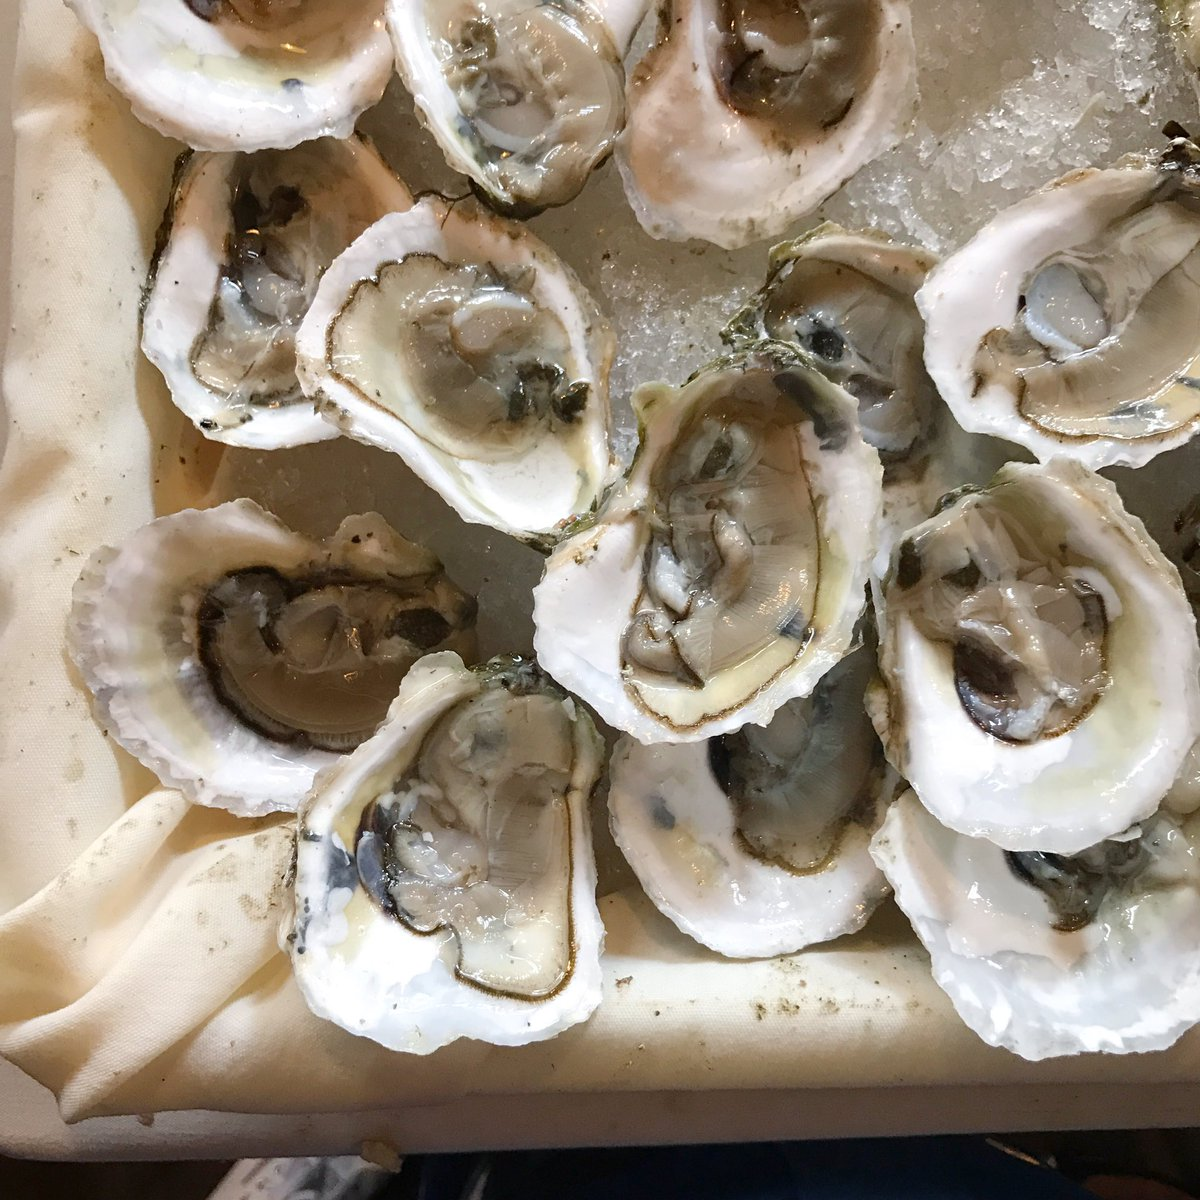 The beautiful Mystic, CT oysters we featured today at @NYCWFF #OysterBash @iloveMysticCT #NYCWFF https://t.co/dXs1IEsZjC